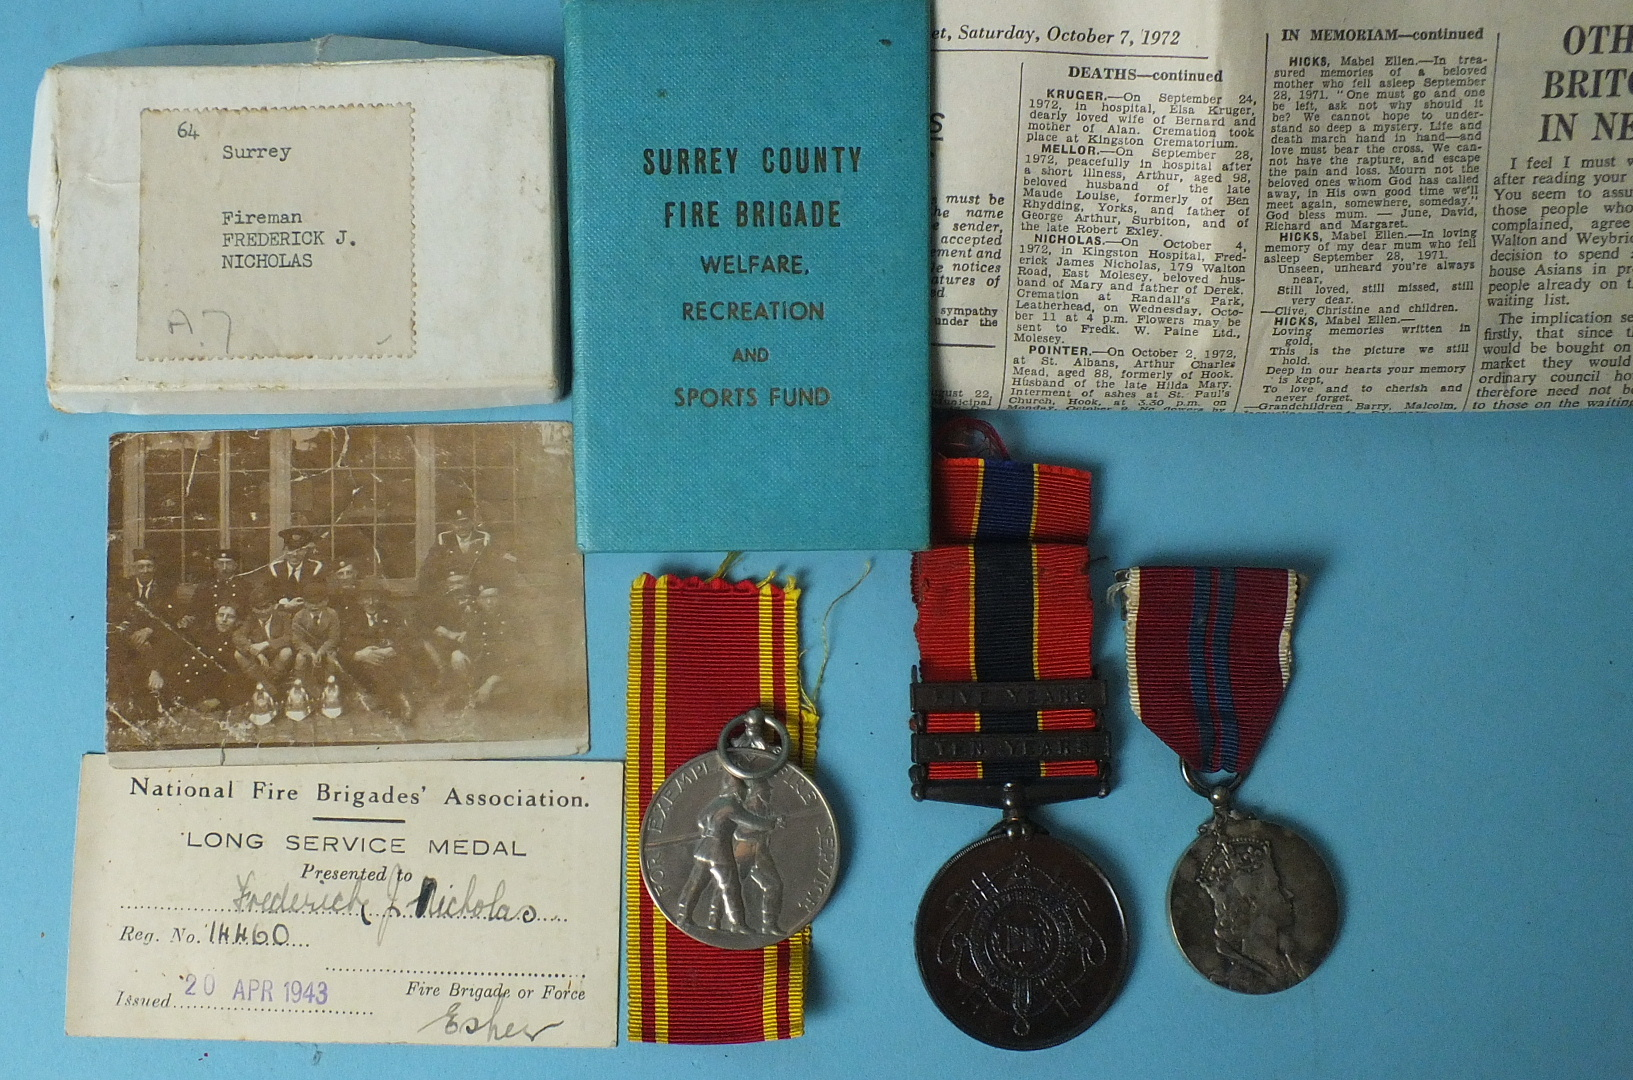 Lot 577 - An Exemplary Fire Service Medal awarded to Fireman Frederick J Nicholas, with ribbons, envelope